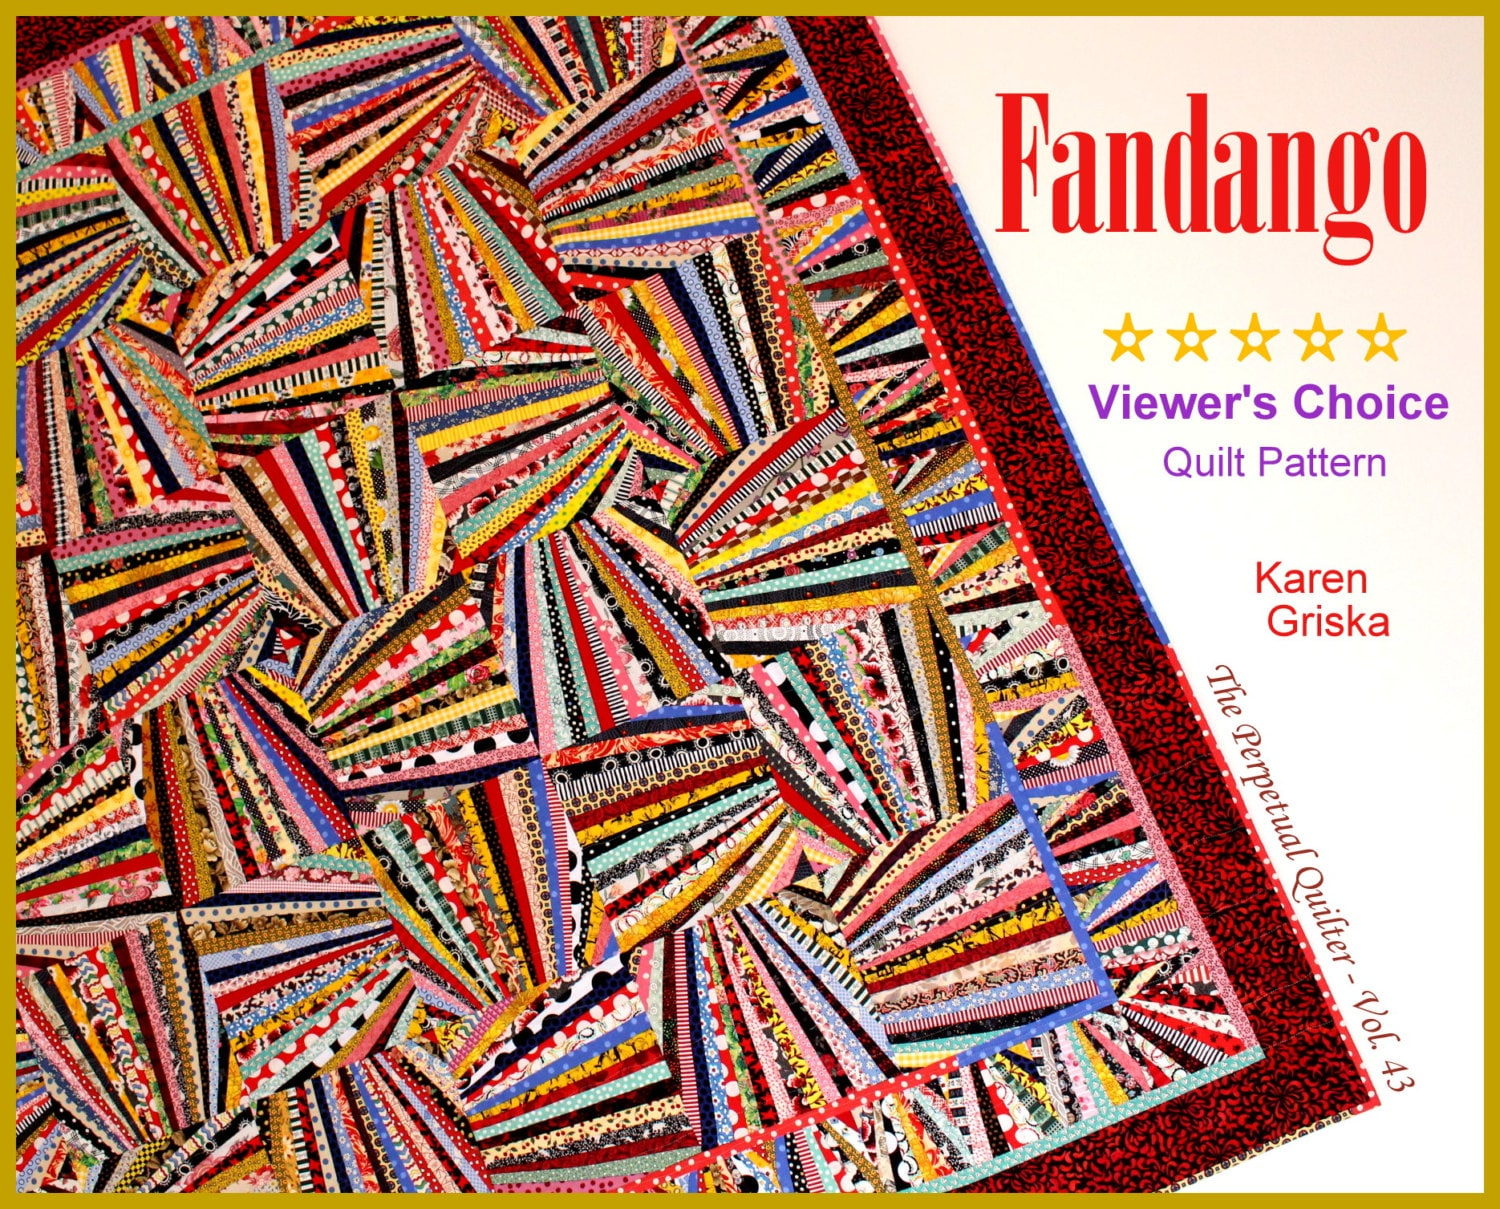 Fandango Quilt Pattern Art Quilt Wall Quilt String Quilt : string quilts patterns - Adamdwight.com